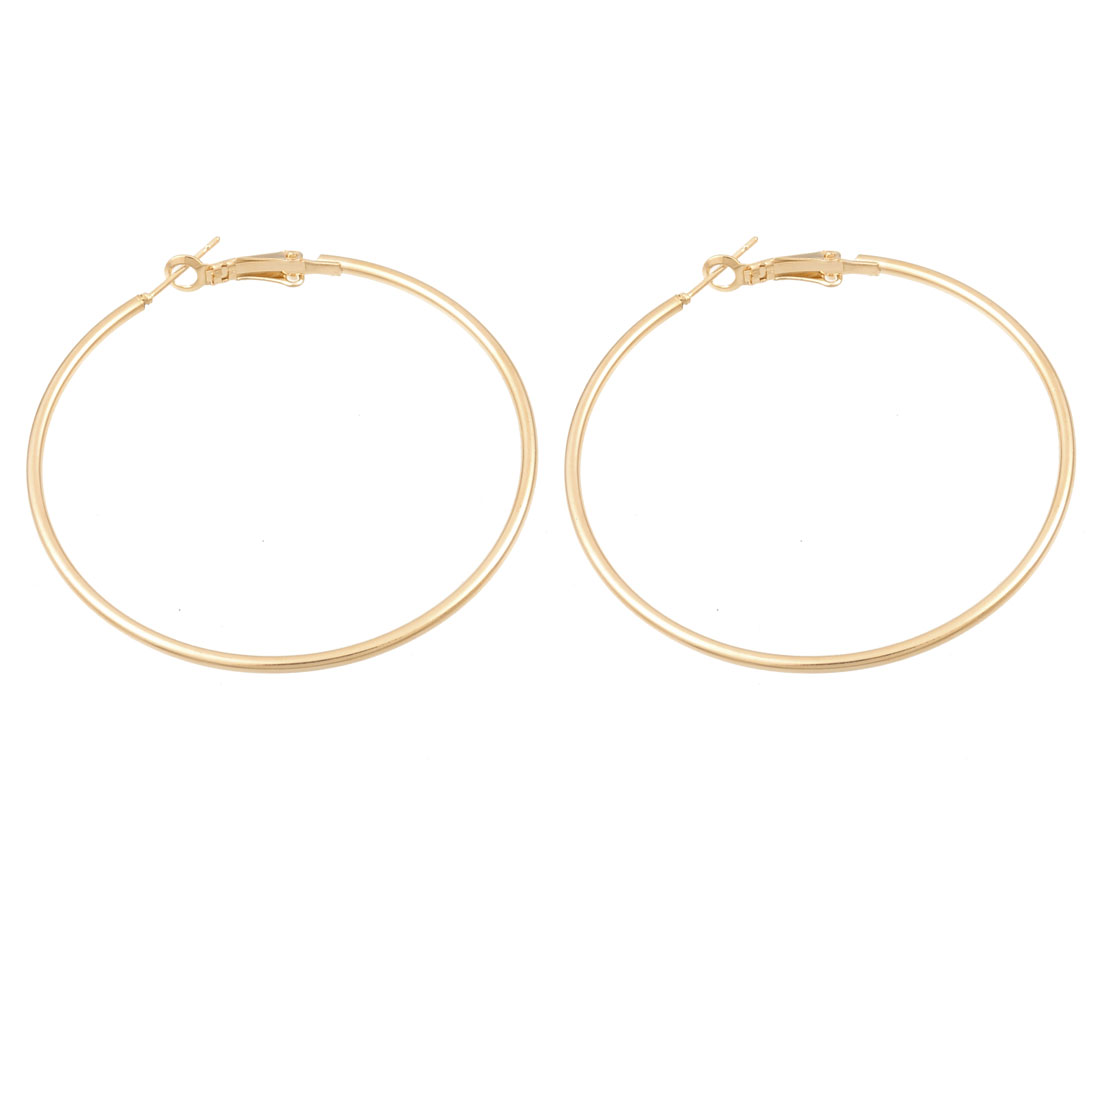 Ladies Gold Tone Metal Hoop Earrings Earbob Eardrop Pair